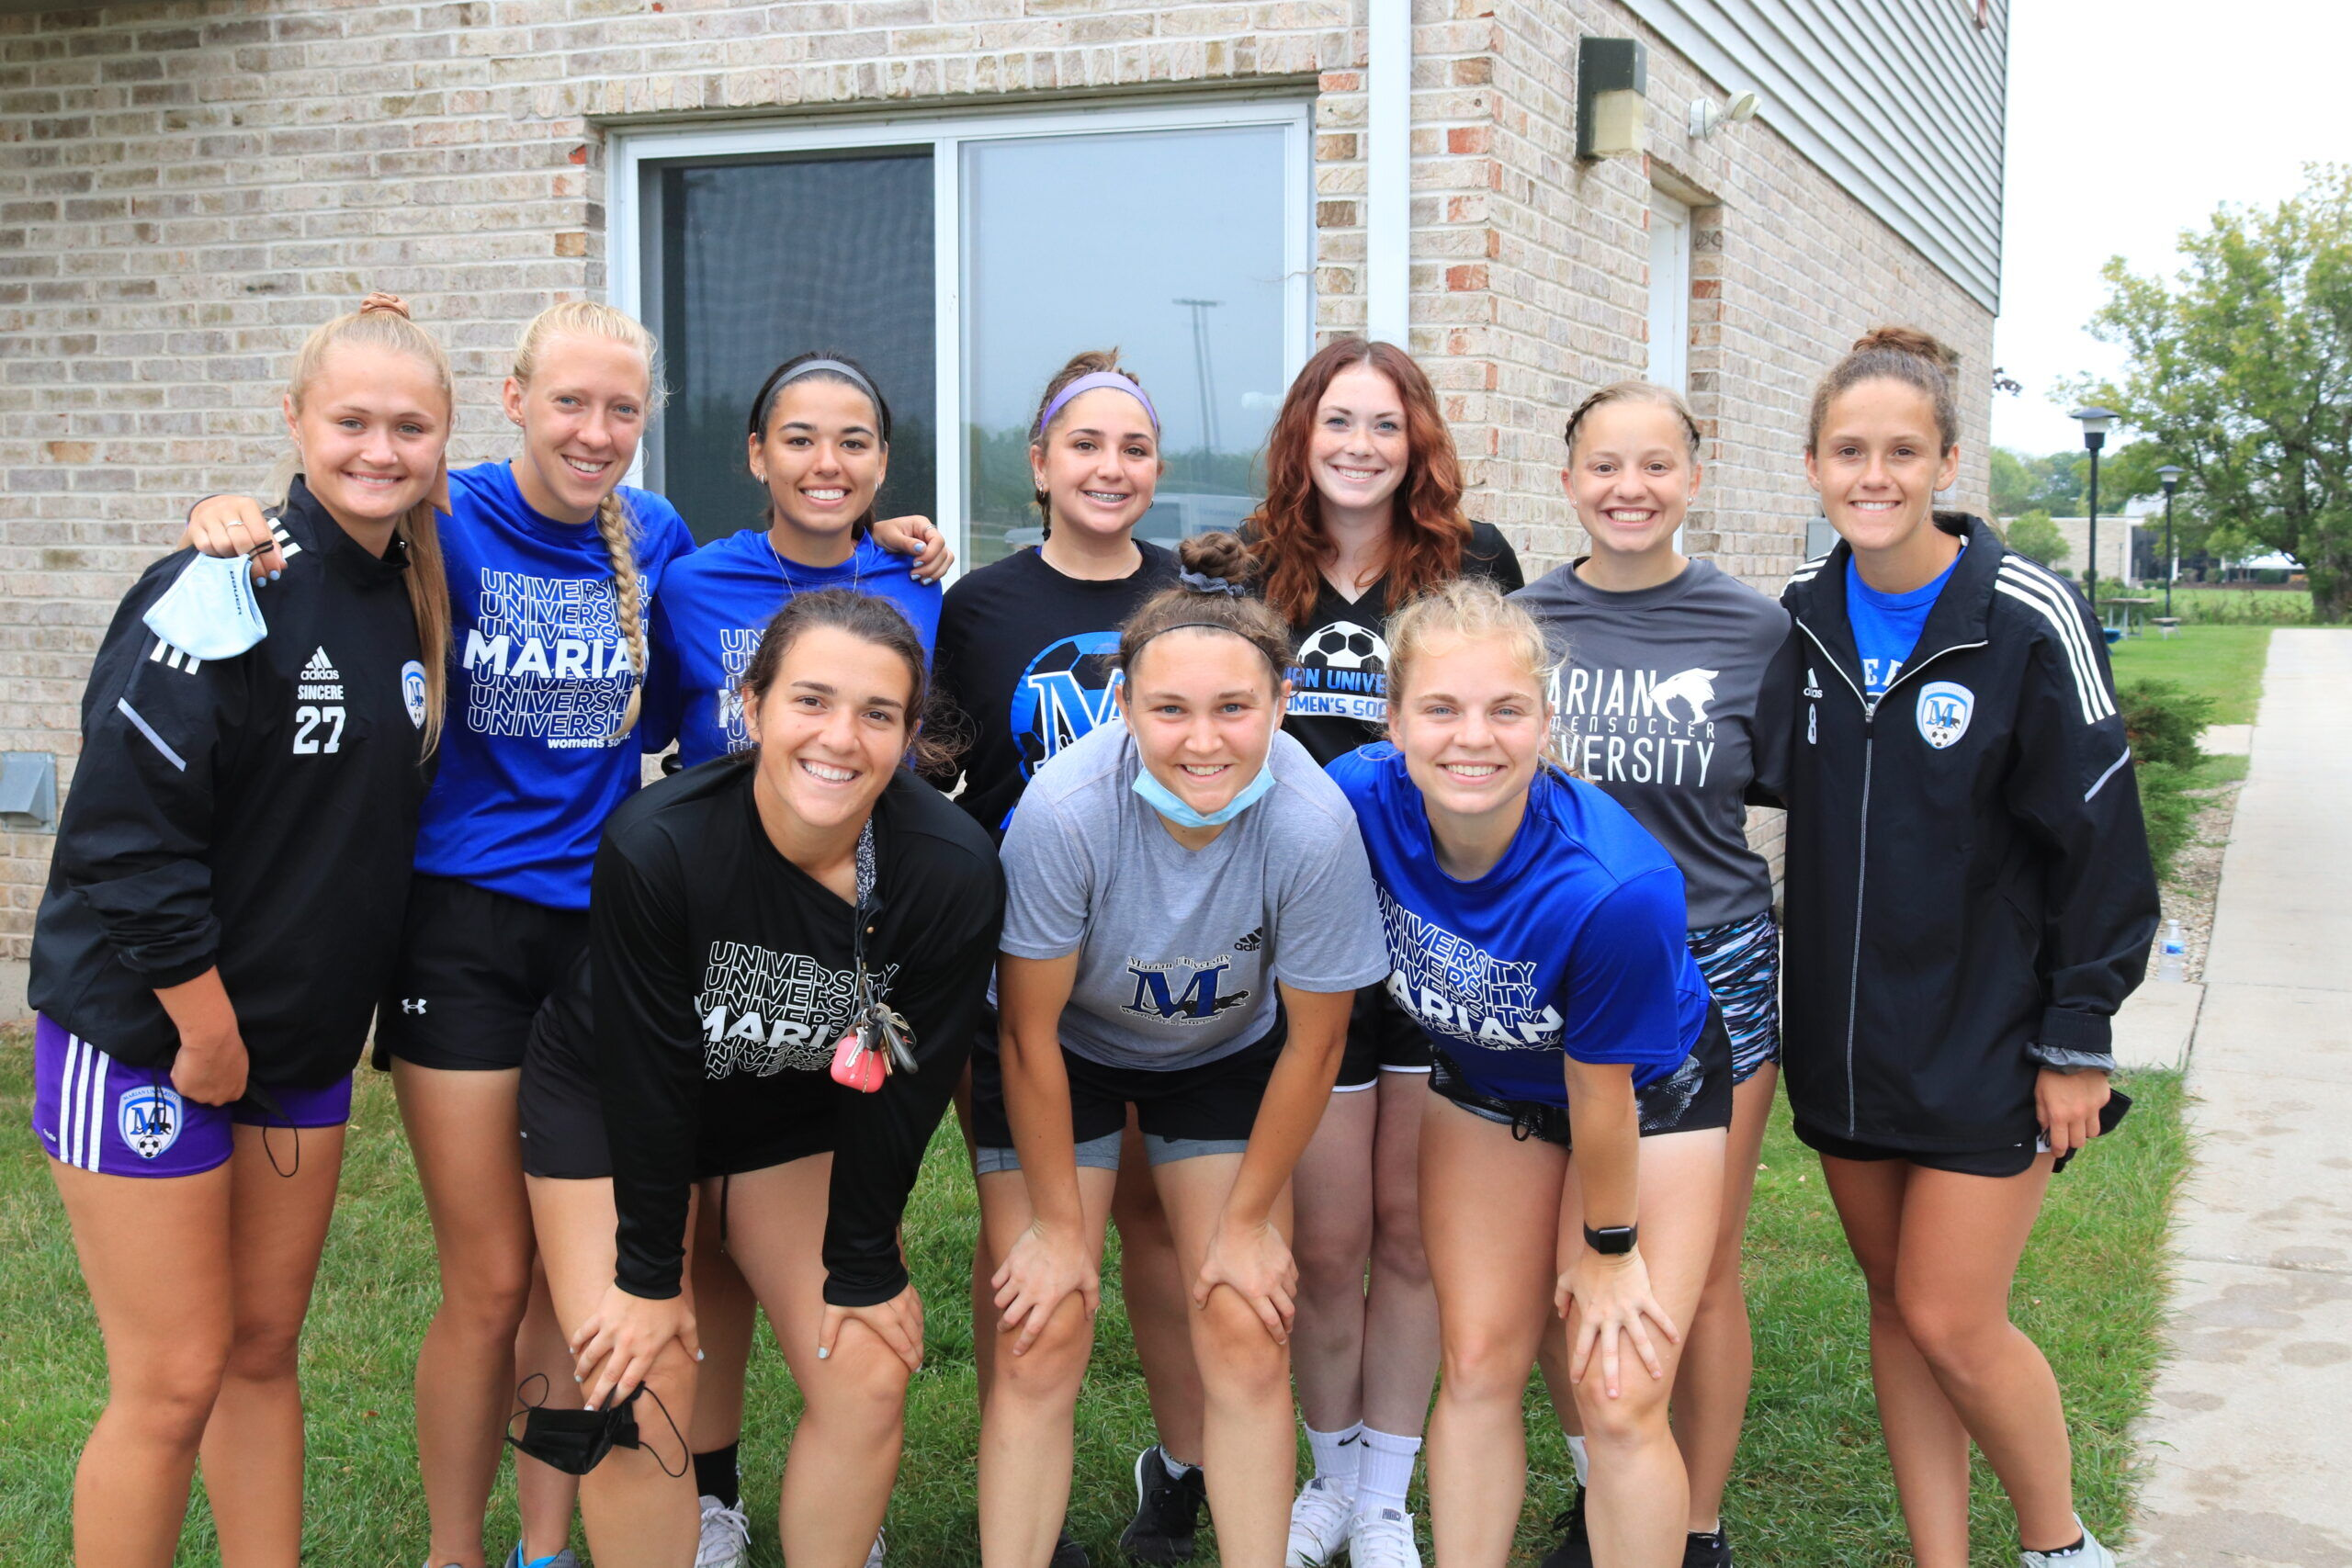 Marian University Women's Soccer team takes a break from helping new students move-in to their residence halls.